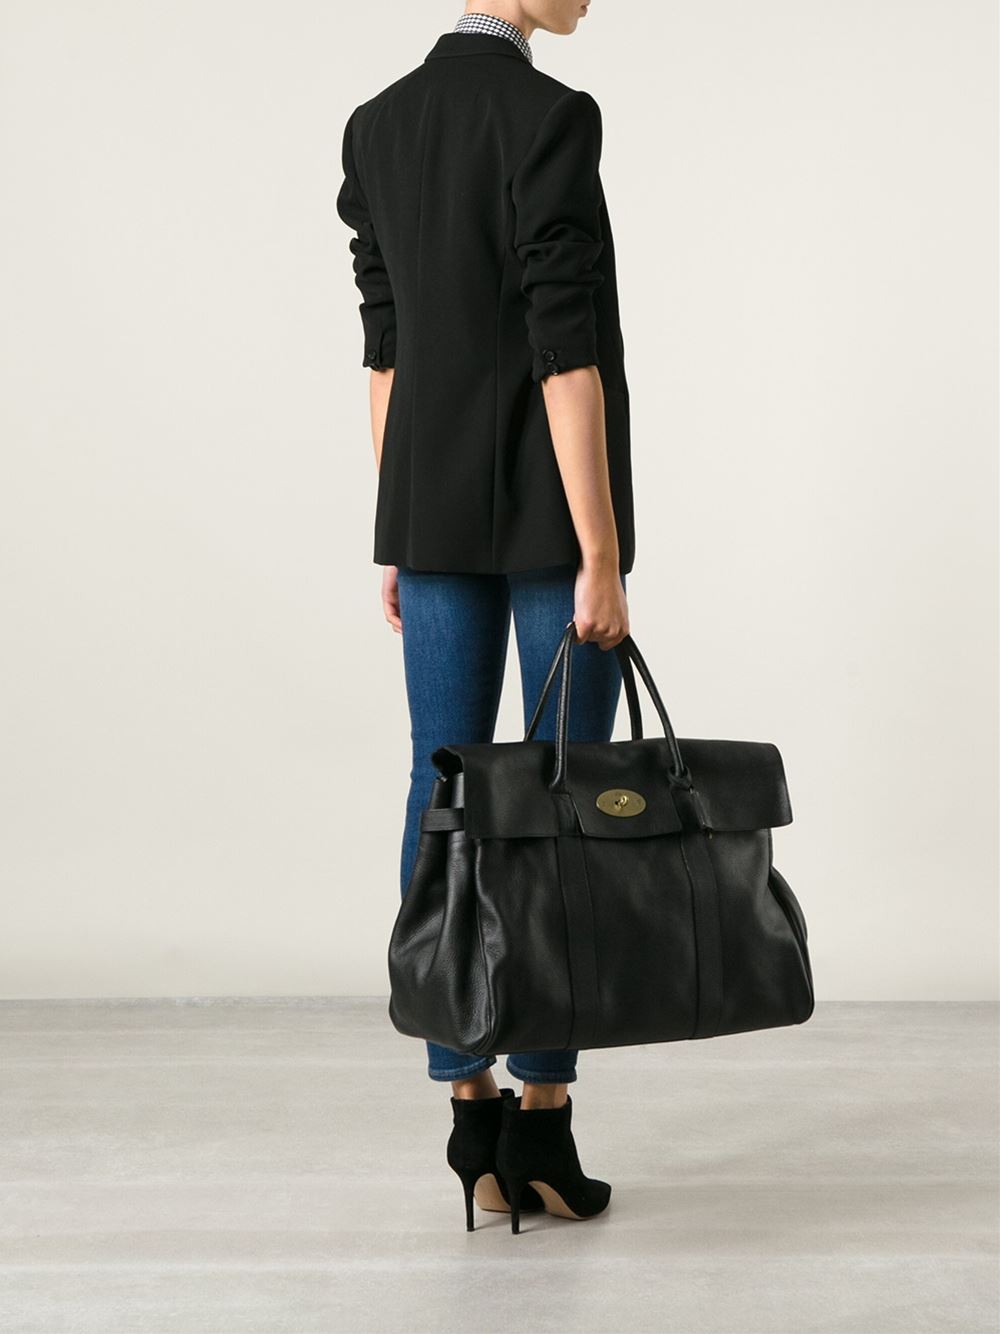 Mulberry Oversized Bayswater Bag in Black | Lyst